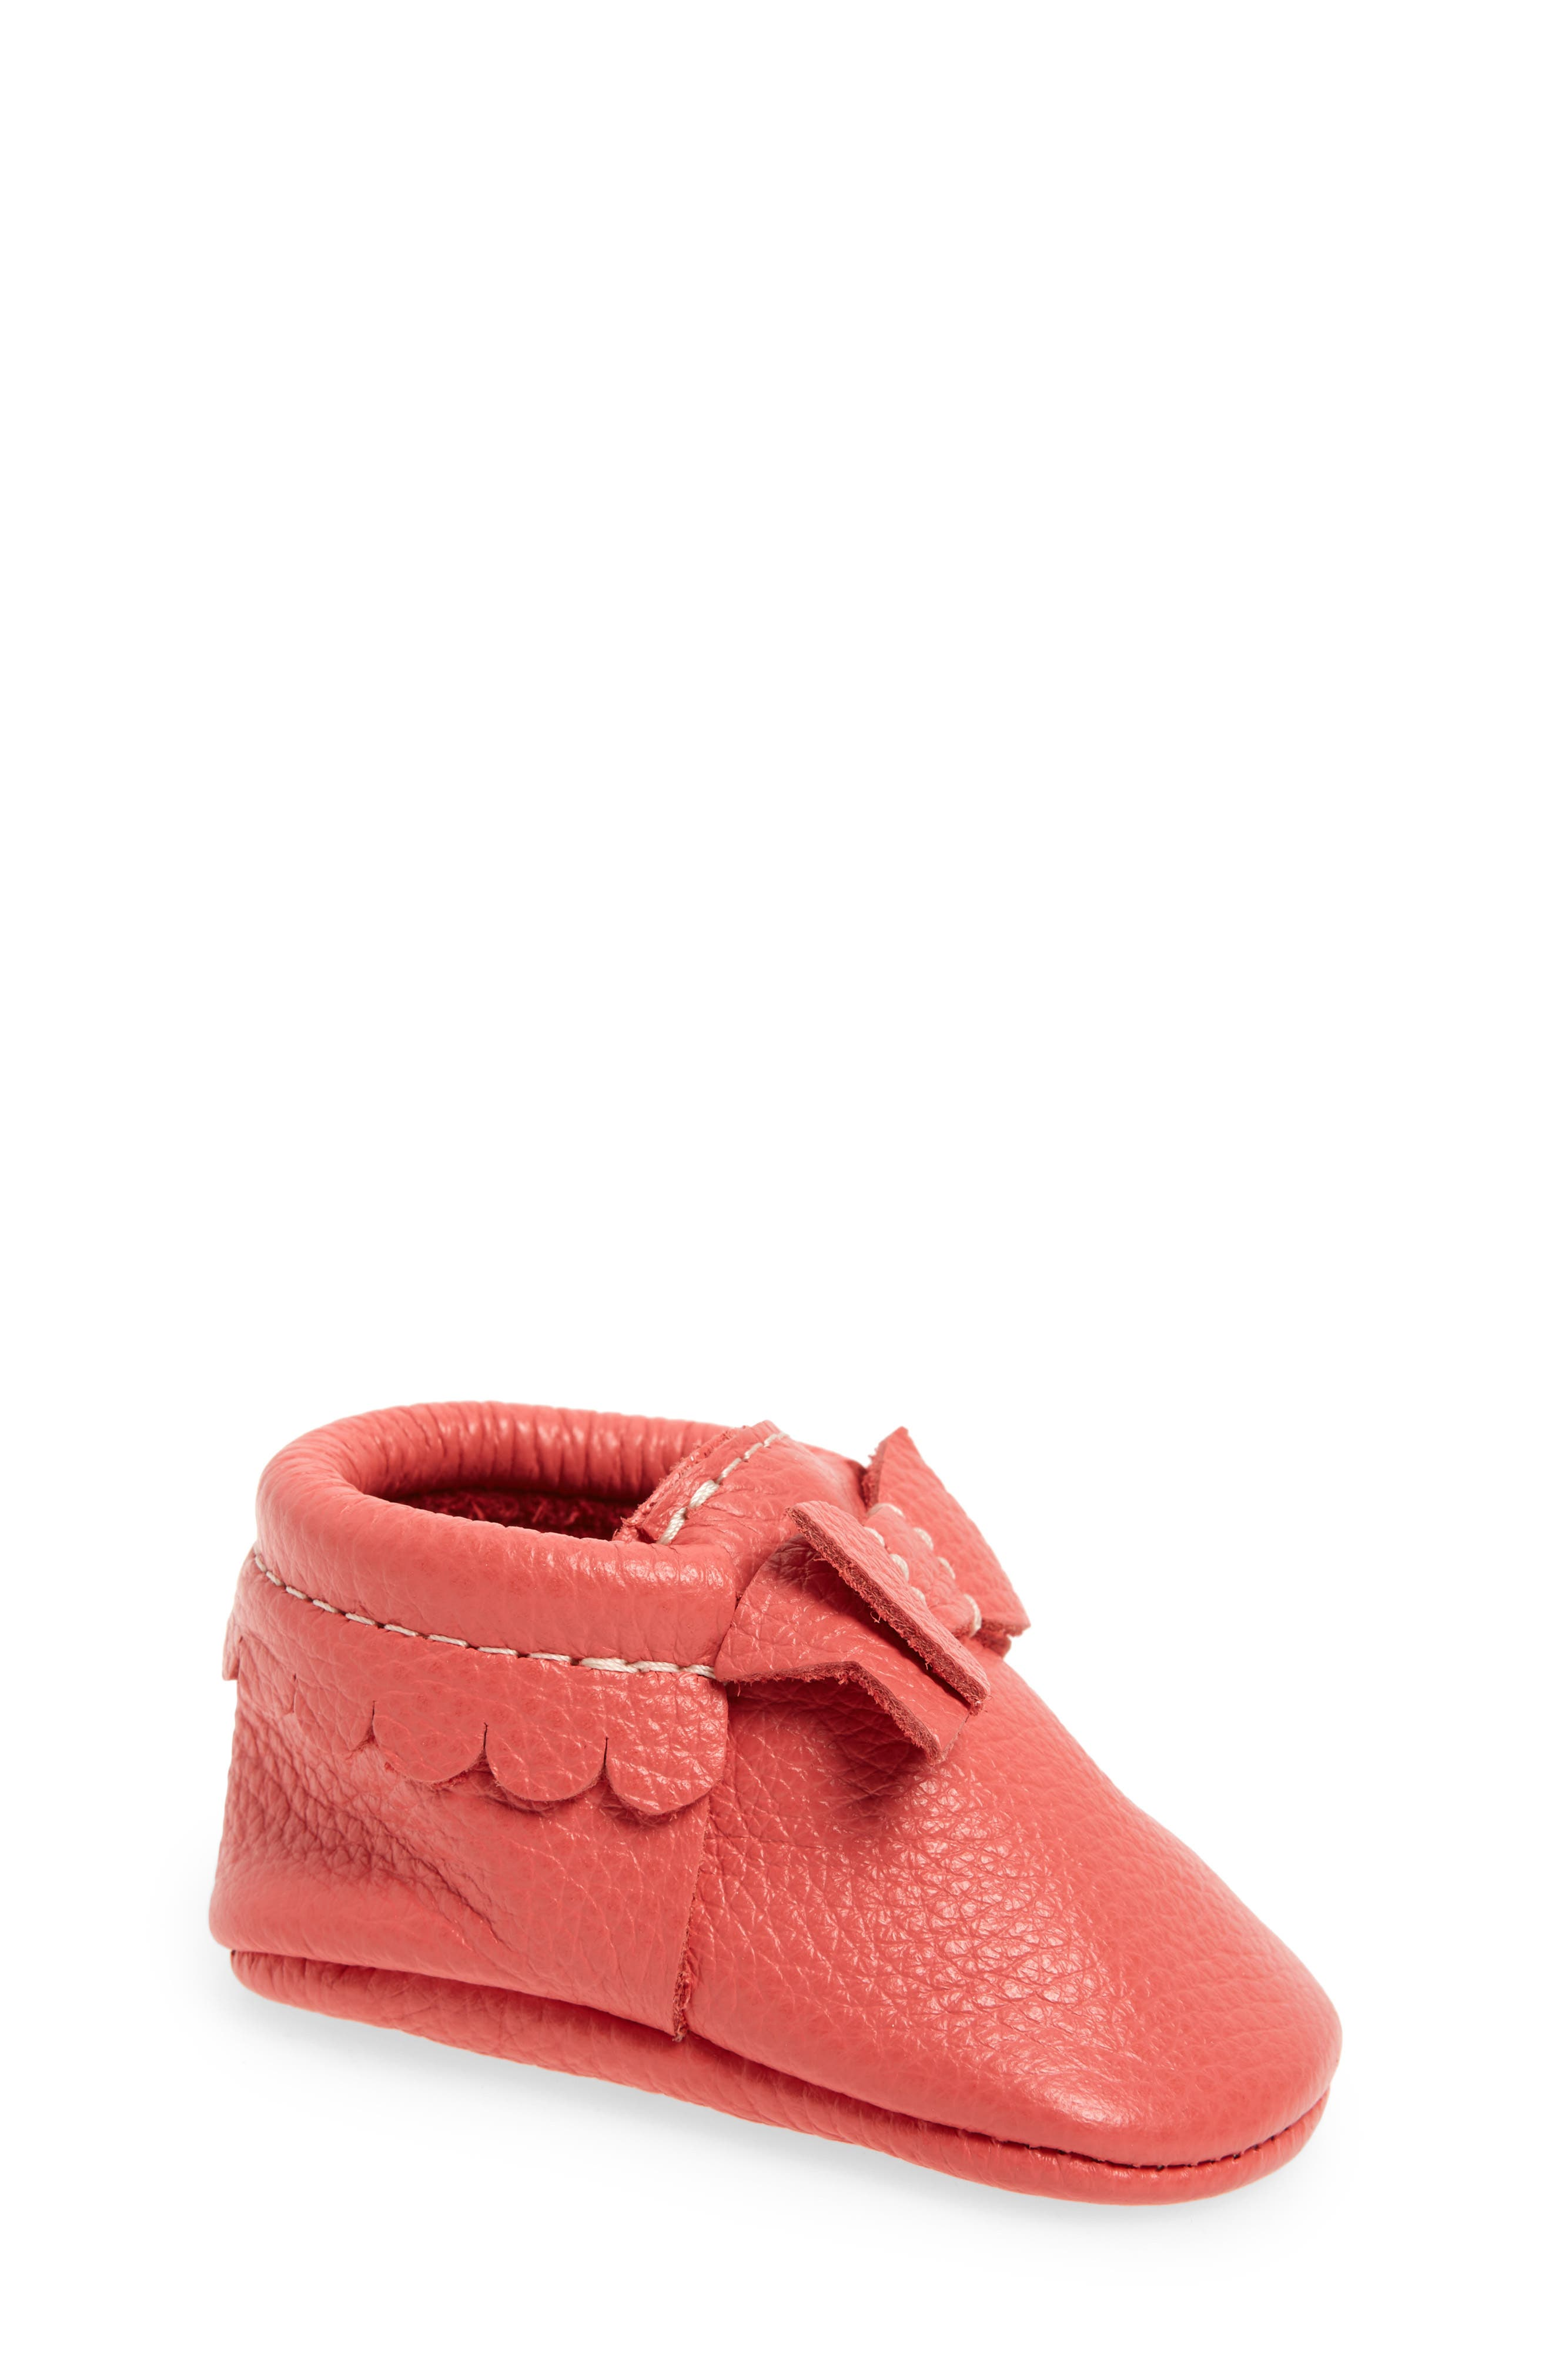 Metallic Bow Moccasin,                         Main,                         color, PINK LEATHER